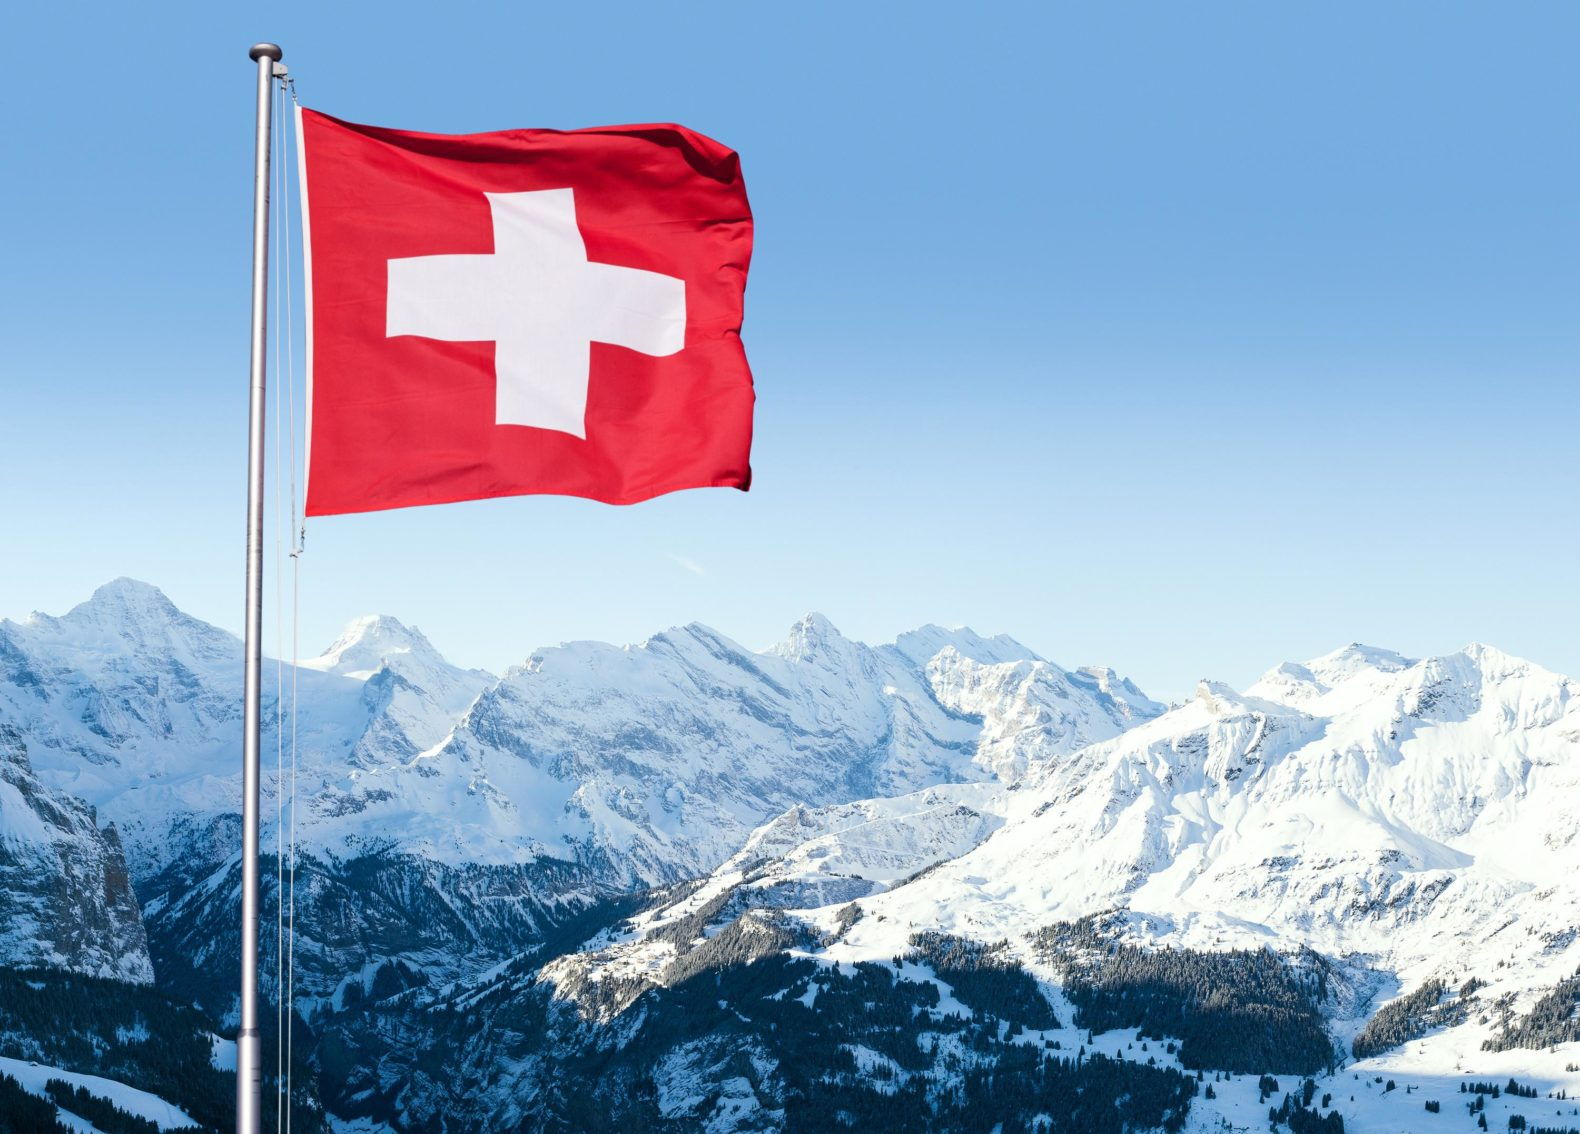 national-flag-mountain-scenery-nature-snow-beautiful-dreamlike-landscape-swiss-mountain-clinic-healing-switzerland-europe.jpeg